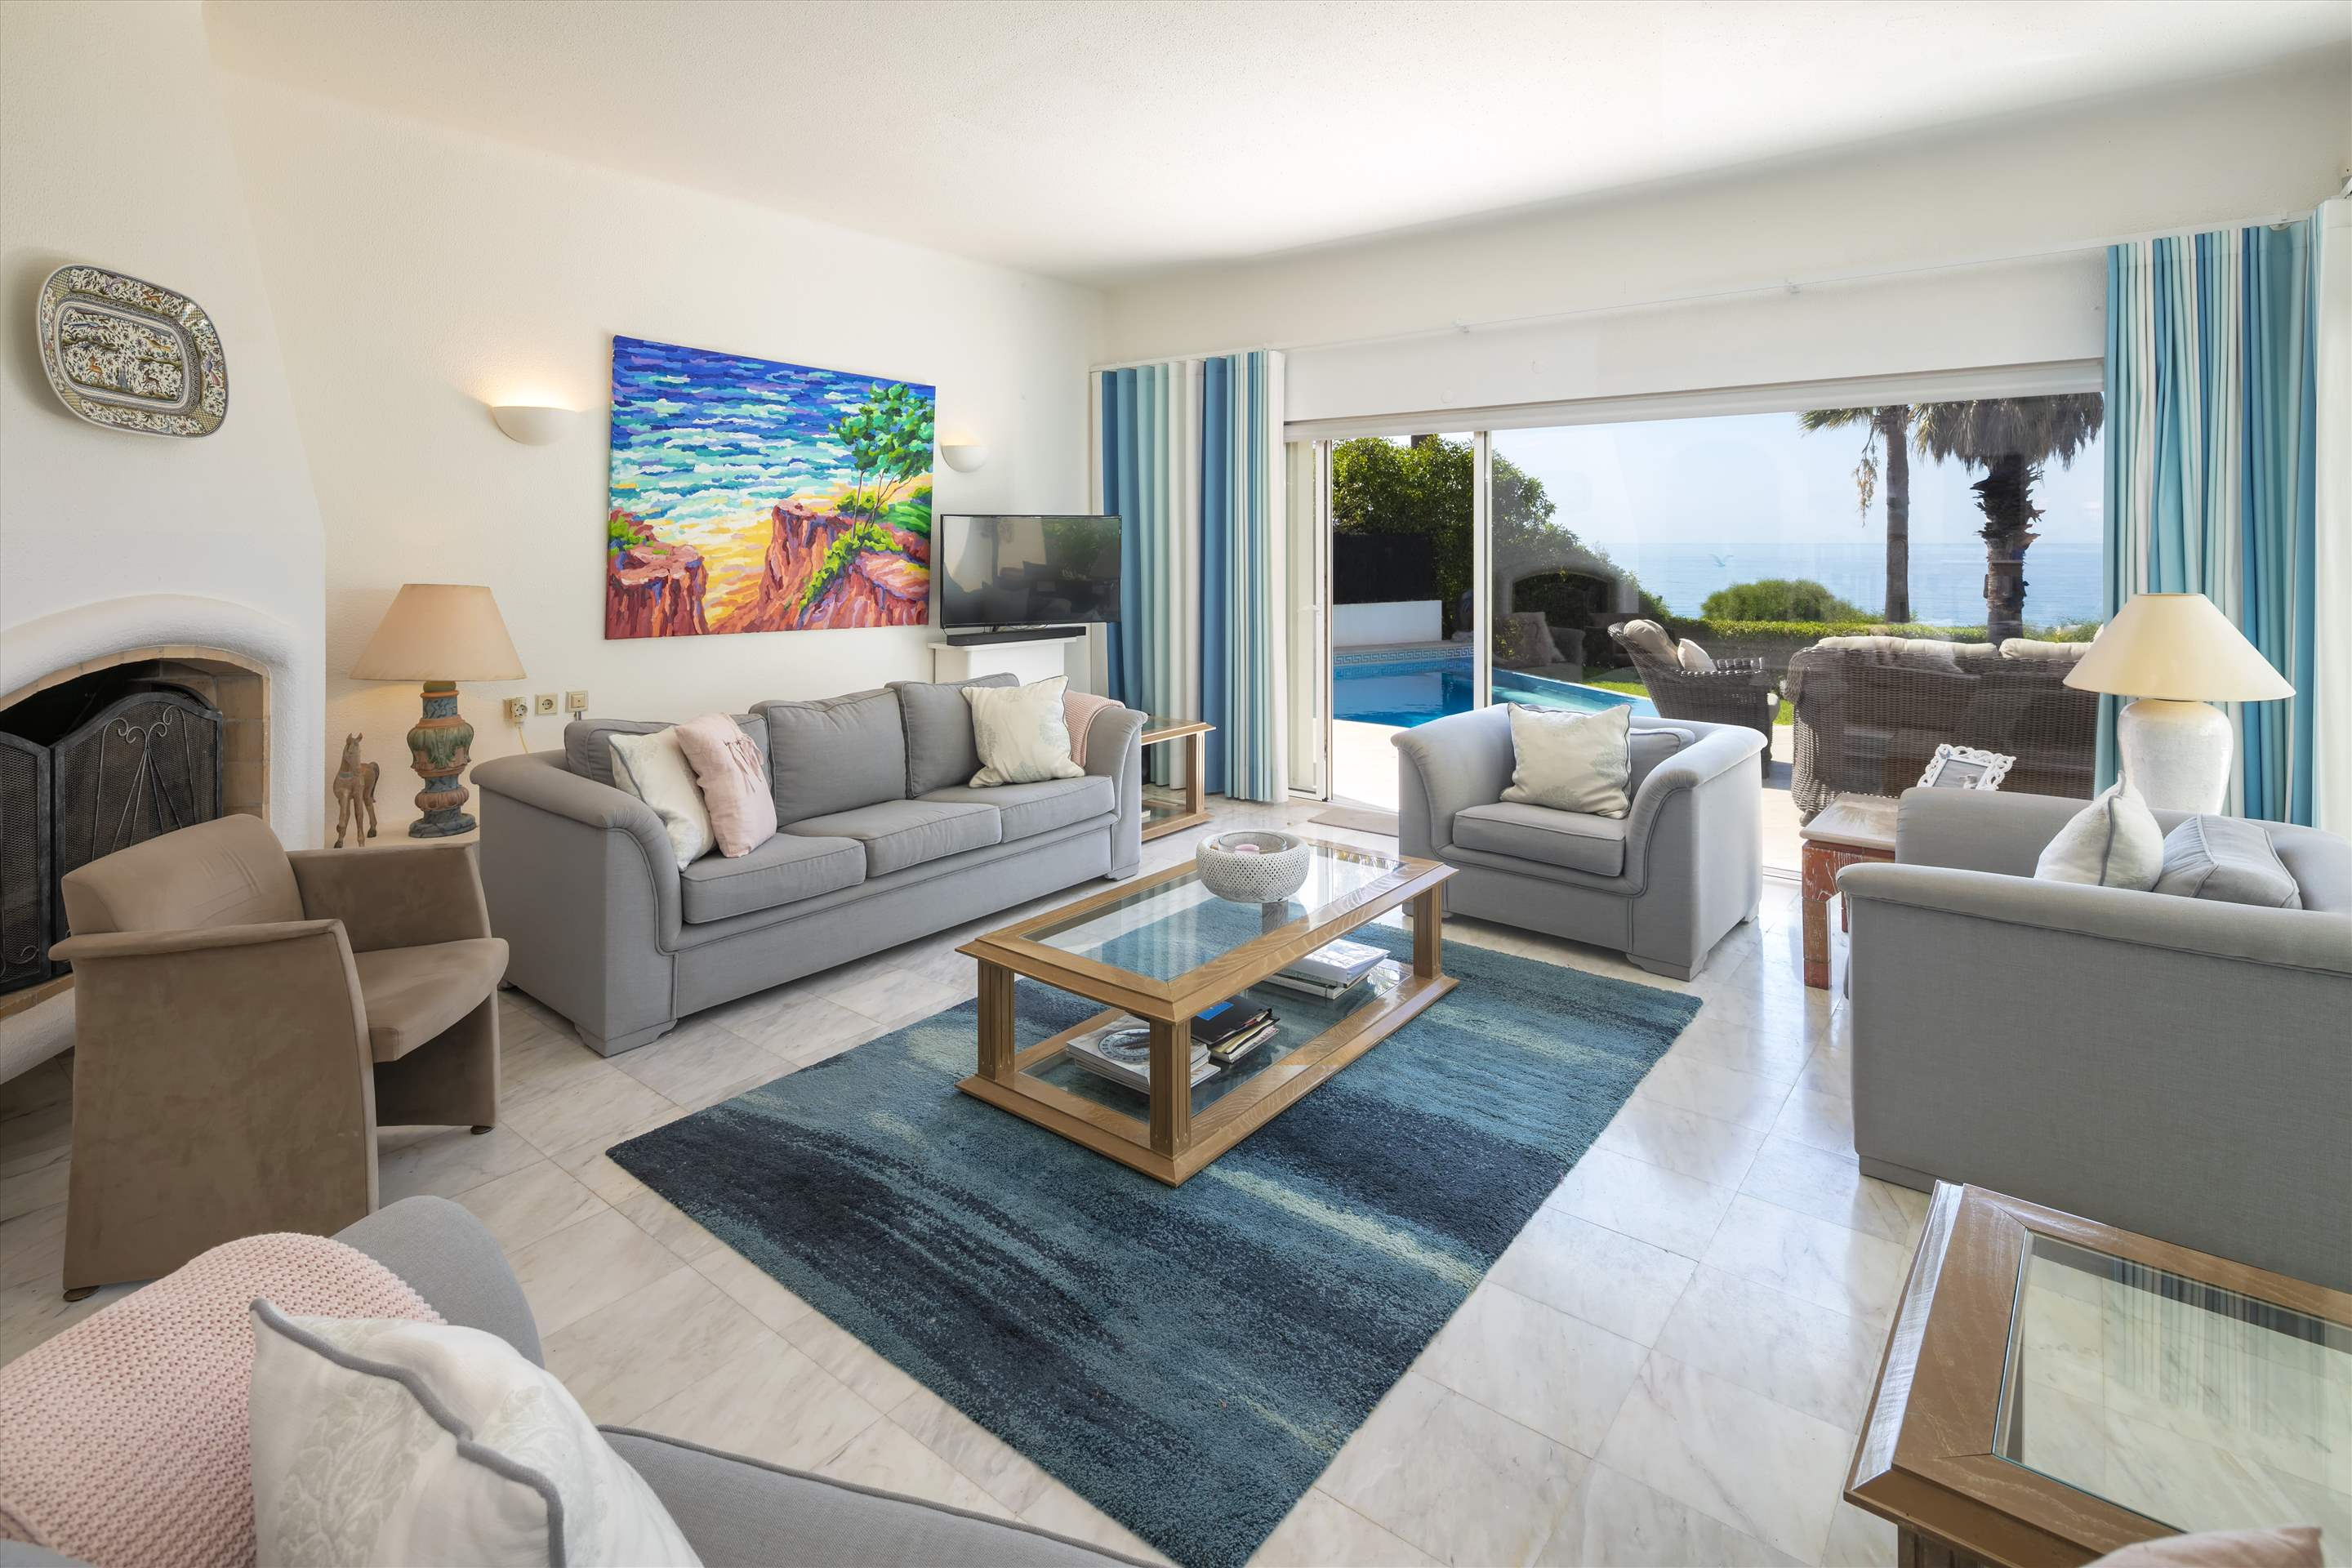 Villa Ocean Beach, 4 bedroom villa in Vale do Lobo, Algarve Photo #7